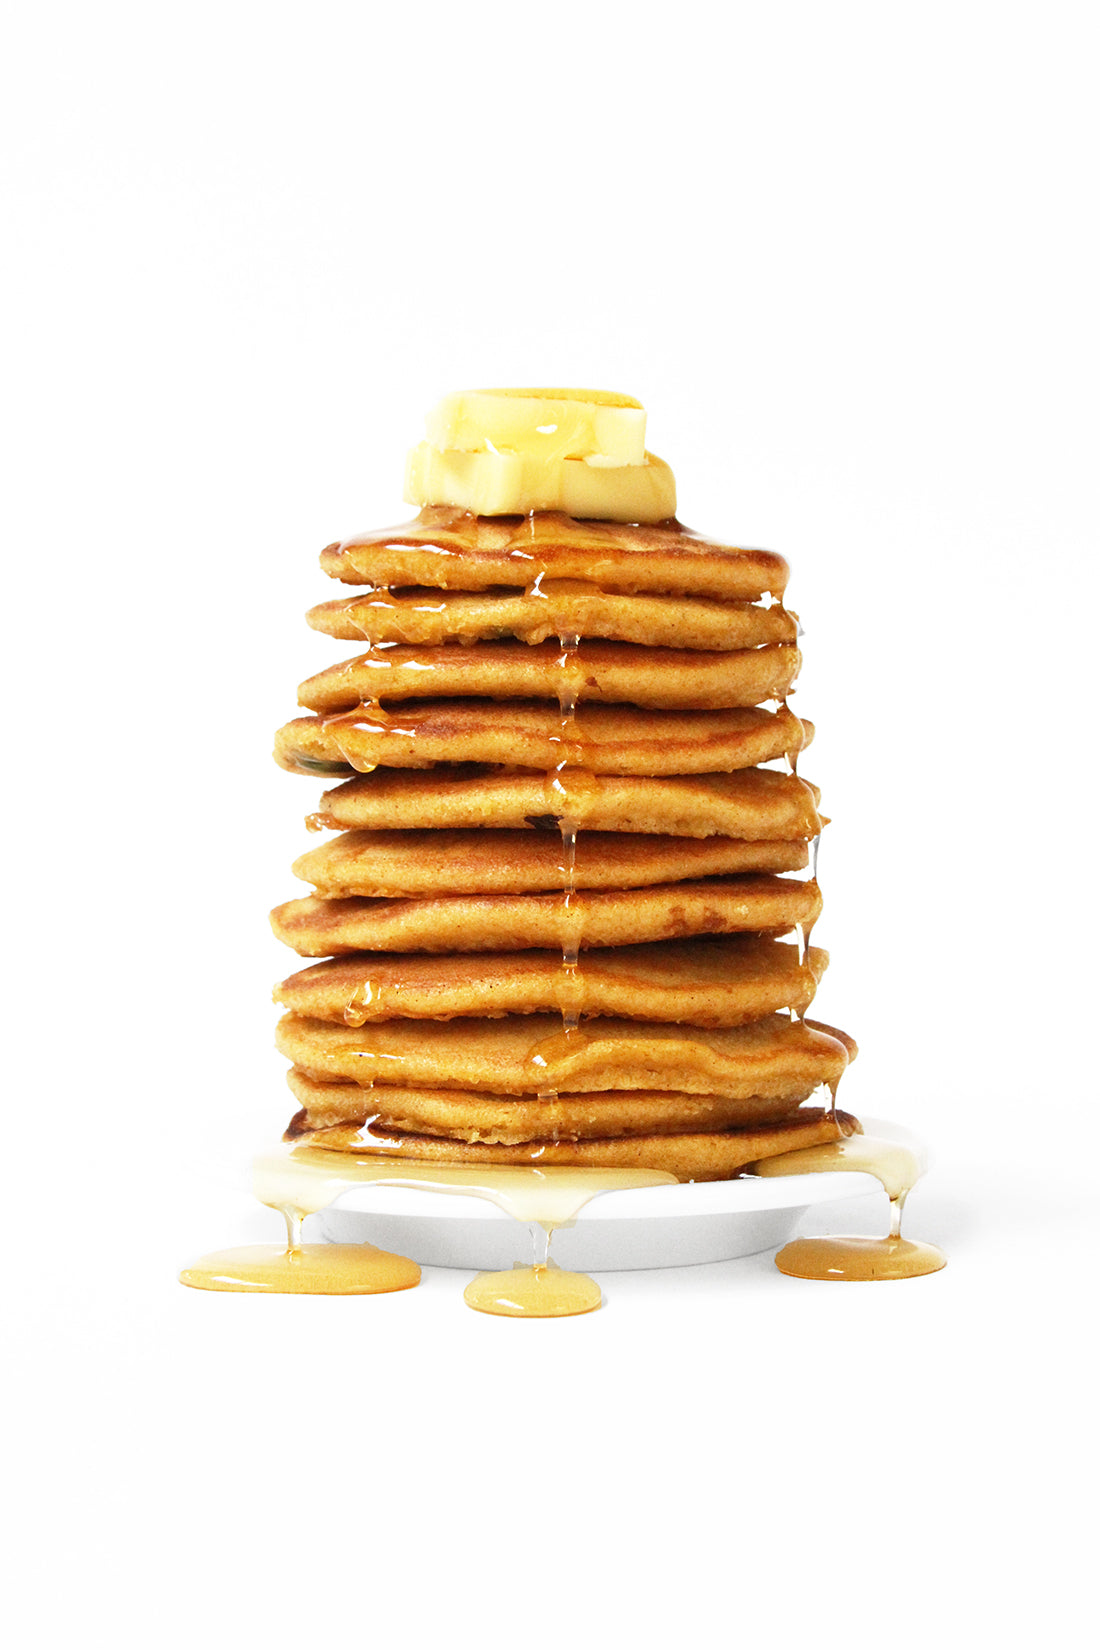 Image from the side of a stack of Miss Jones Baking Co Pumpkin Pancakes topped with syrup and butter